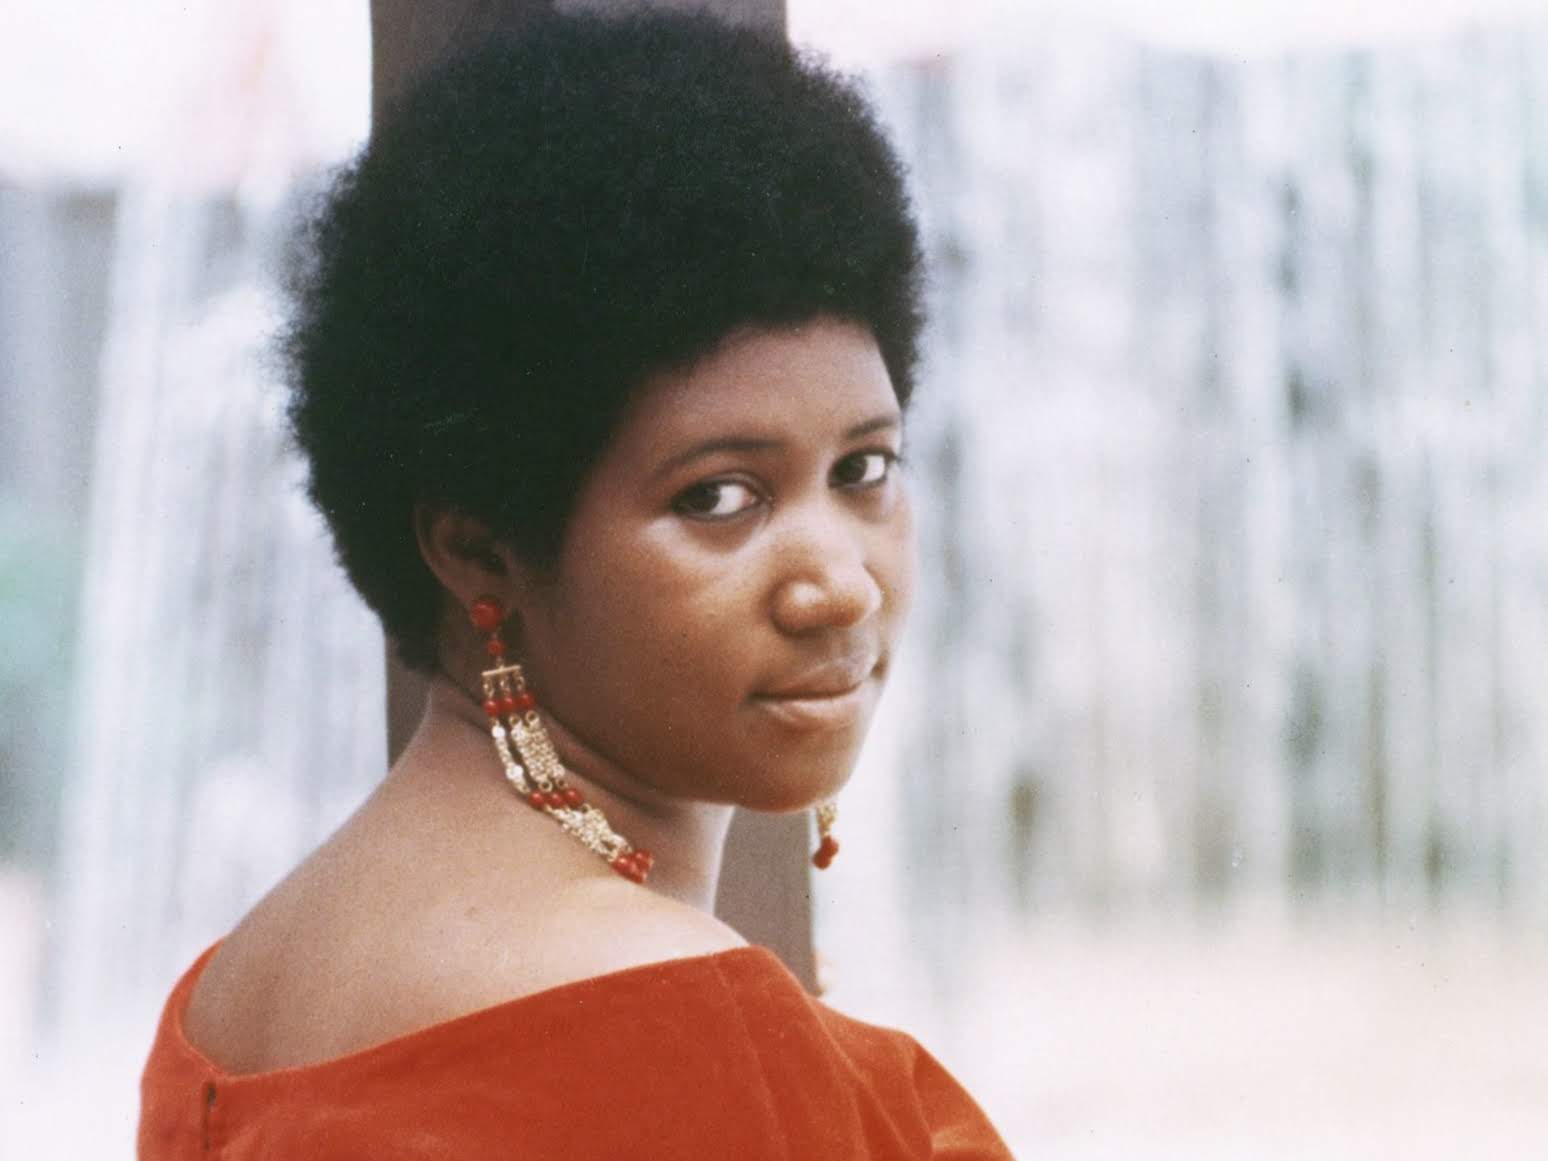 Aretha Franklin wins 2019 Pulitzer Prize for contributions to music, culture